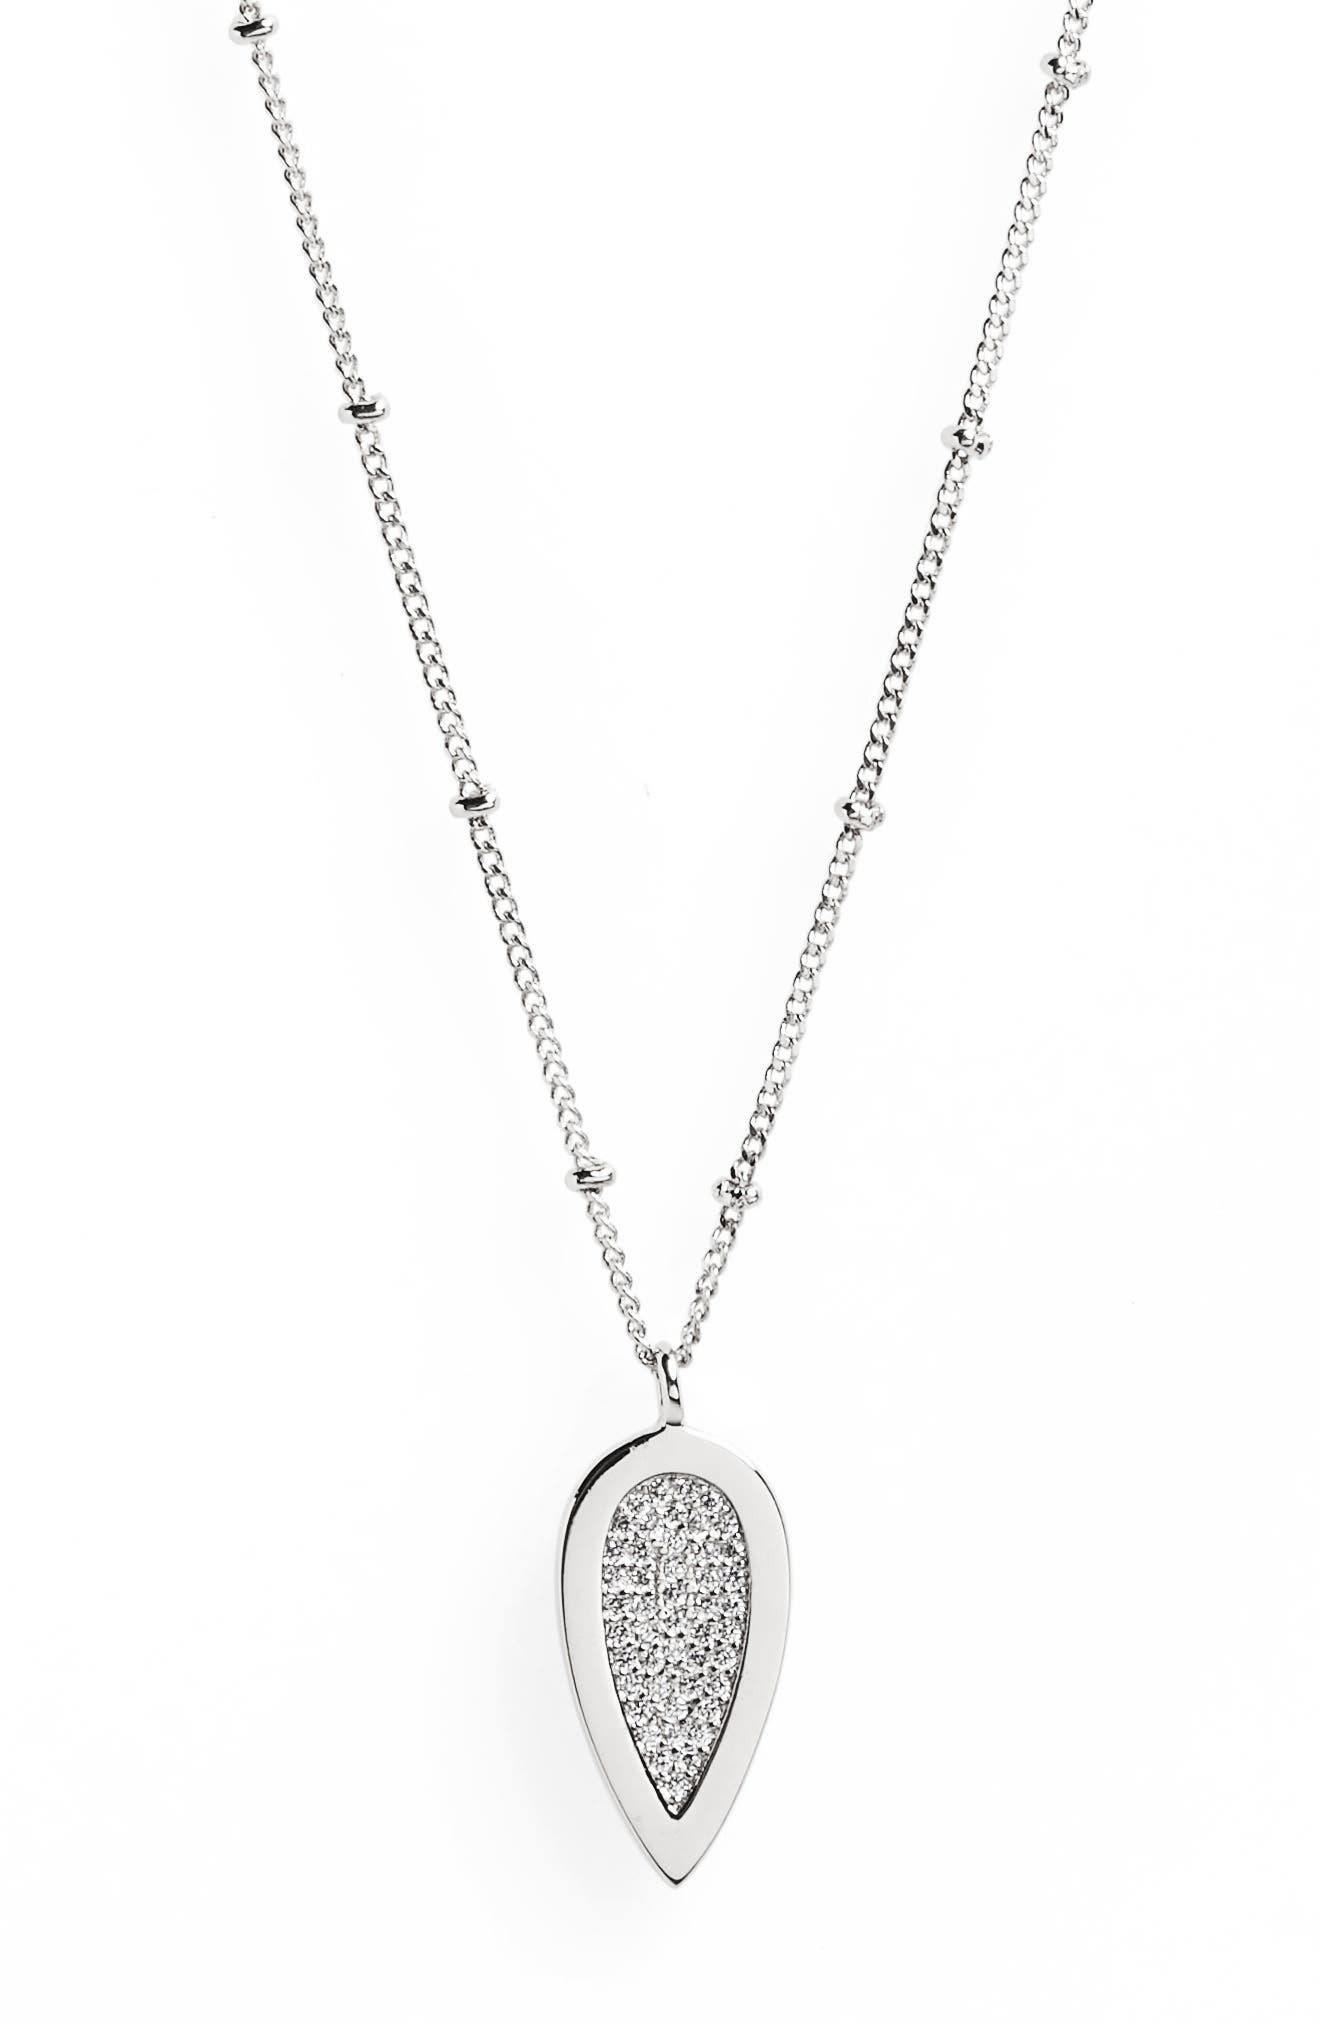 Teardrop Pendant Necklace,                         Main,                         color, 040